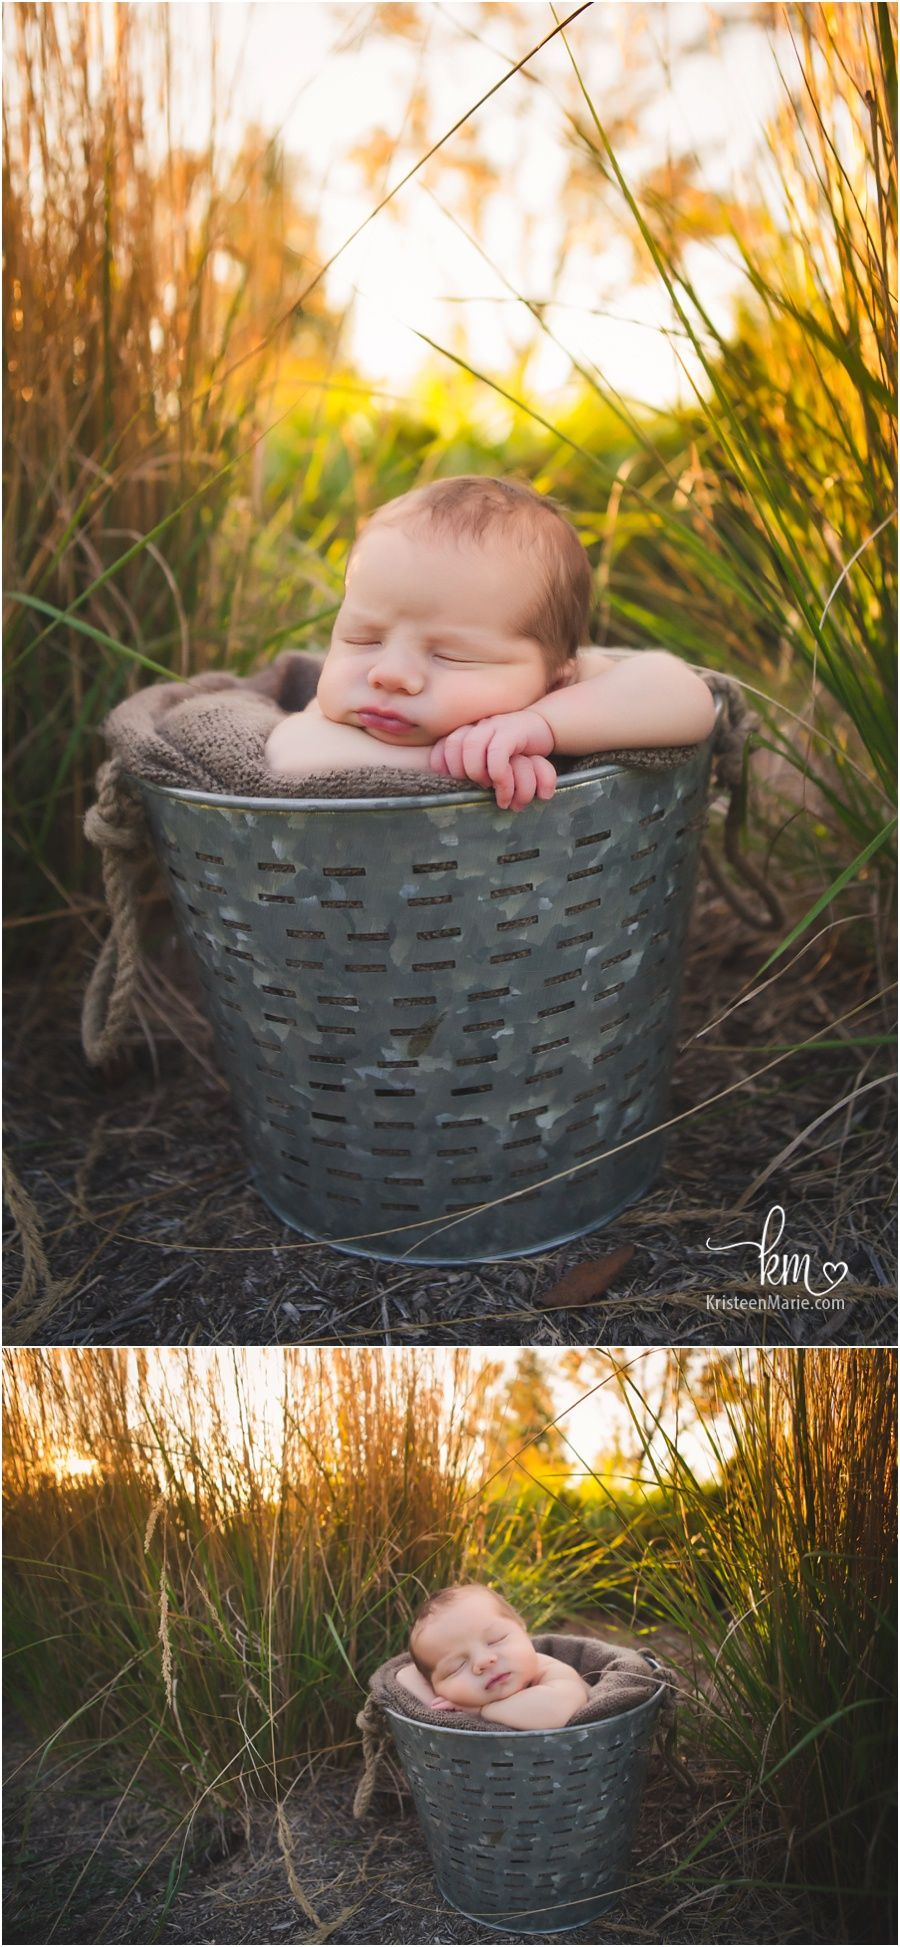 Newborn baby in a bucket at sunset outdoor newborn pictures outdoor newborn photography